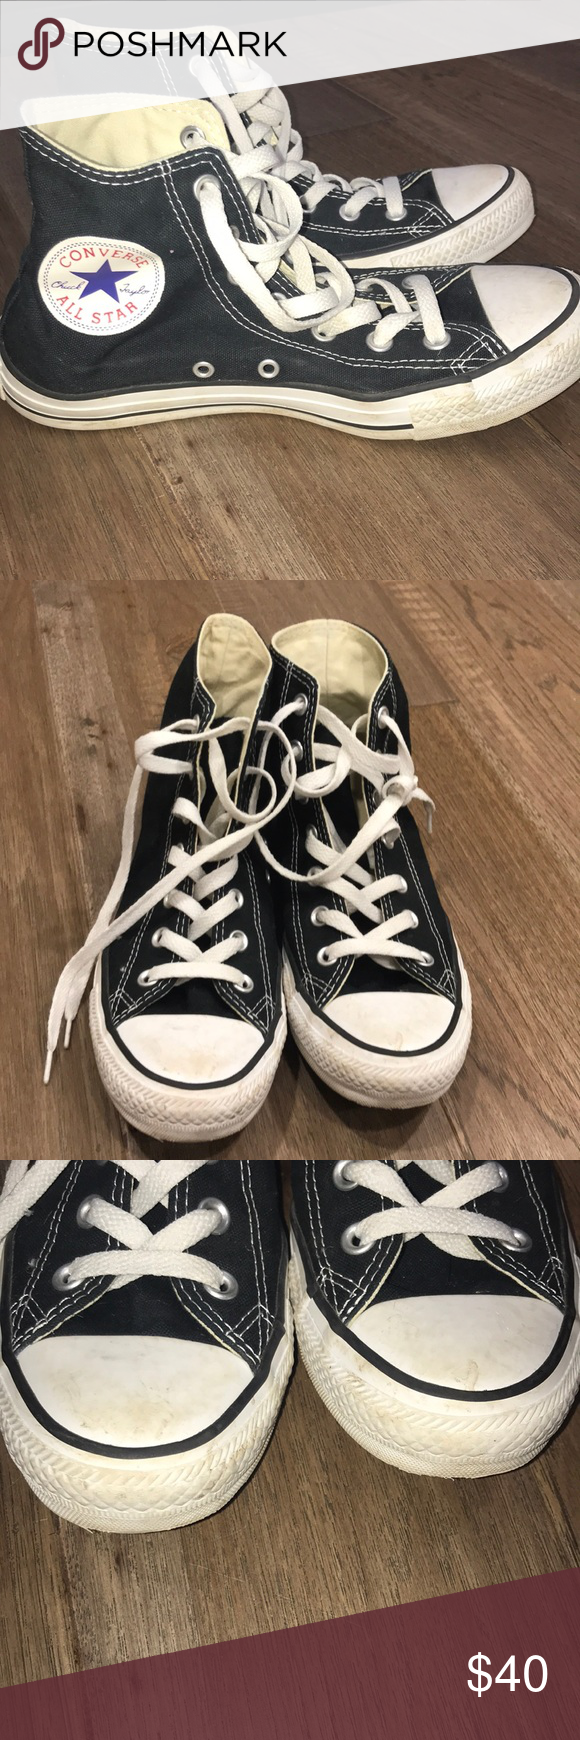 20aae49ec4b4 Black Converse High tops Lightly worn black high tops A few scuffs (I can  remove before shipping) Men s 6 women s 8 Converse Shoes Sneakers